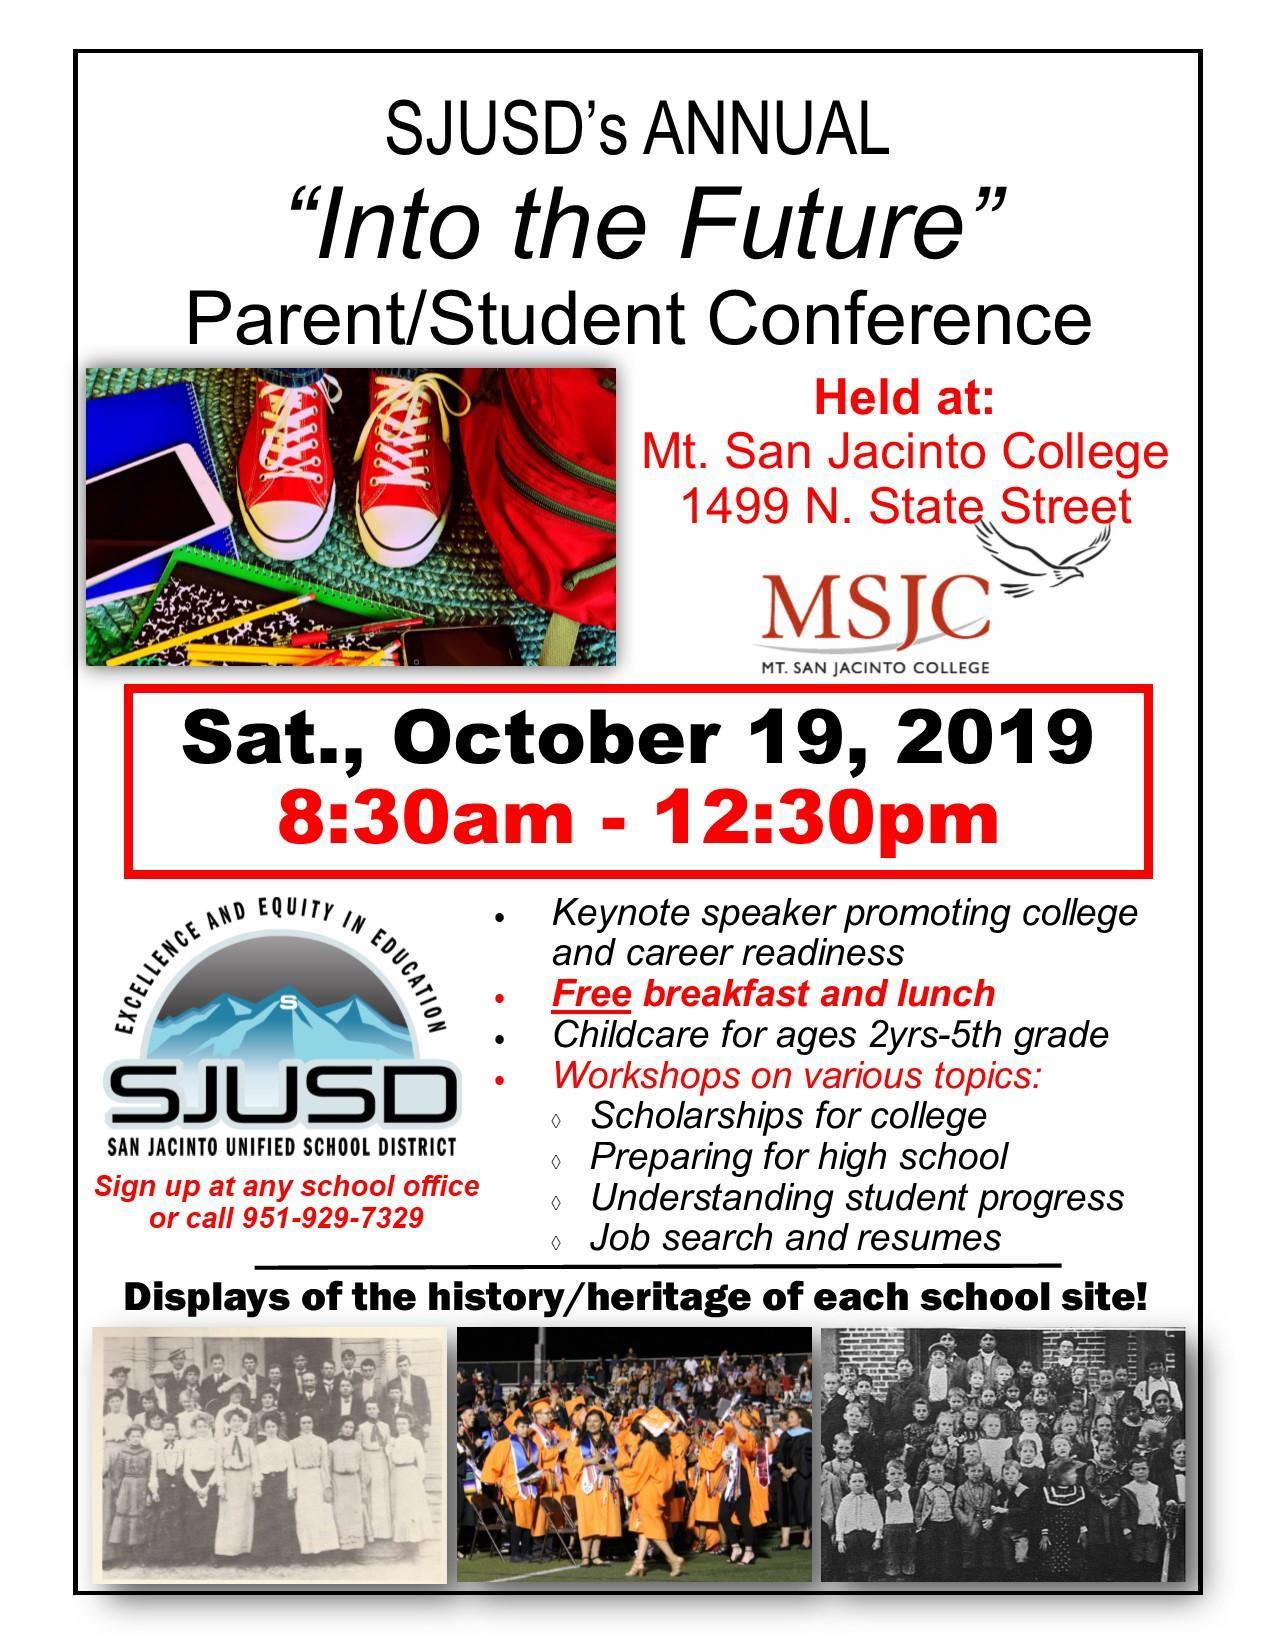 Flyer for Into the Future Parent/Student Conference